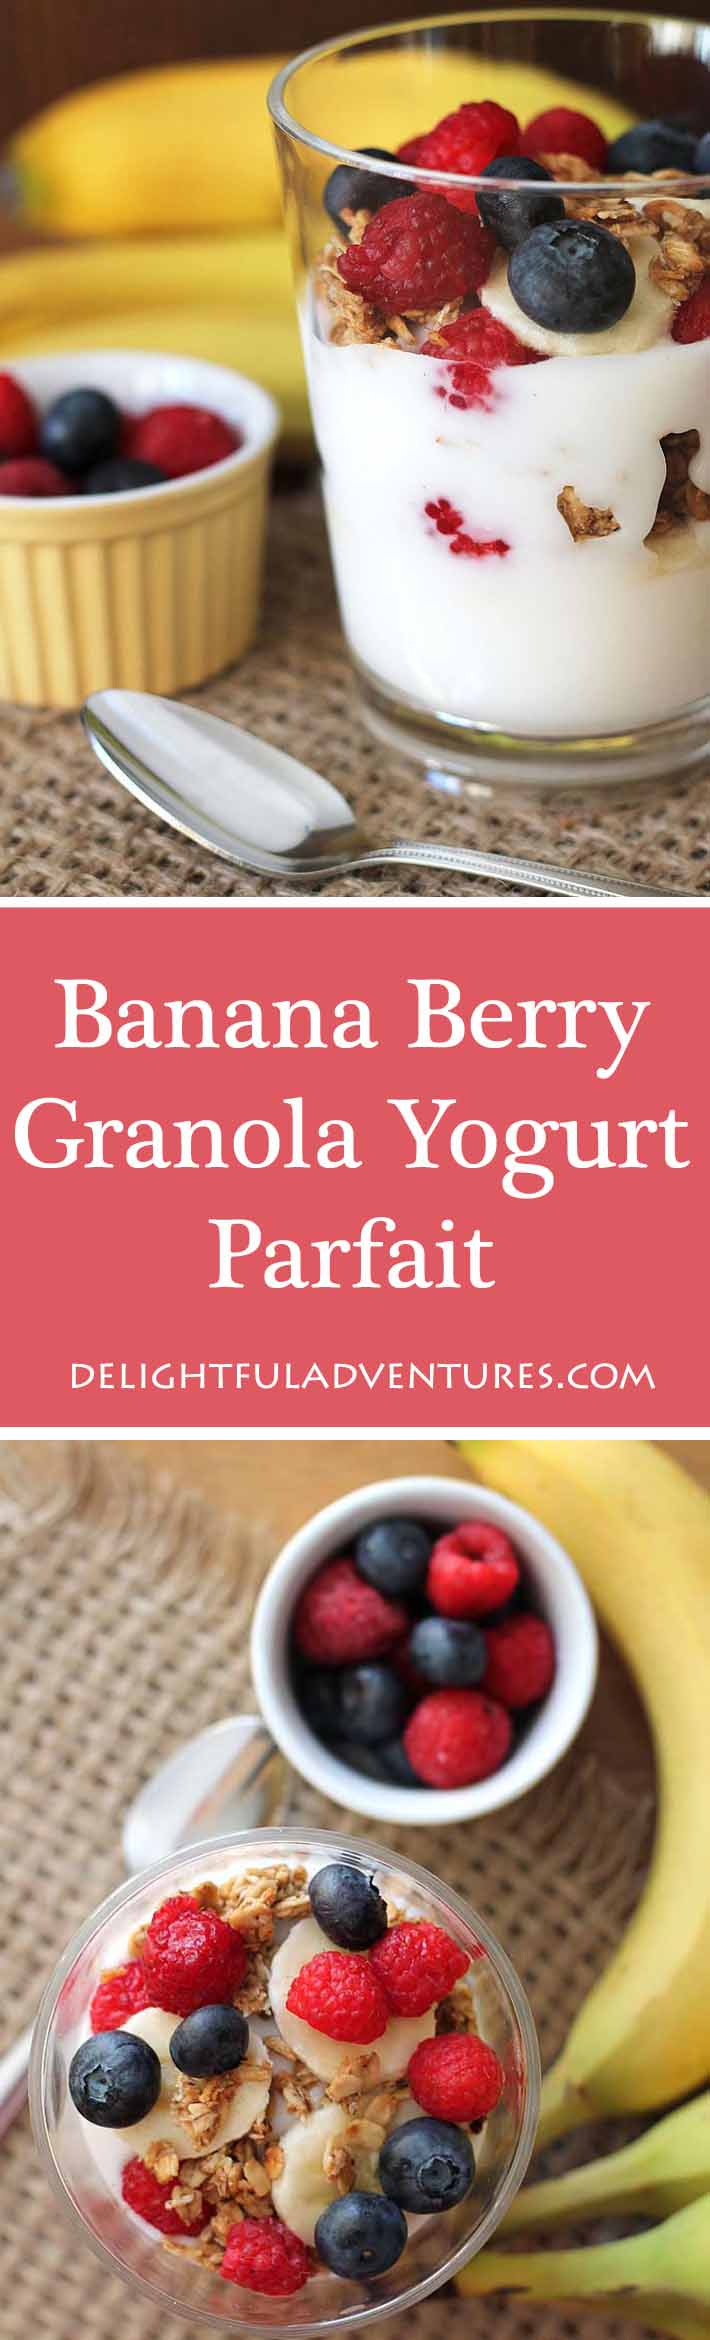 A Banana Berry Granola Yogurt Parfait is just what you need to start your day or to keep you going when you're looking for a healthy afternoon snack.